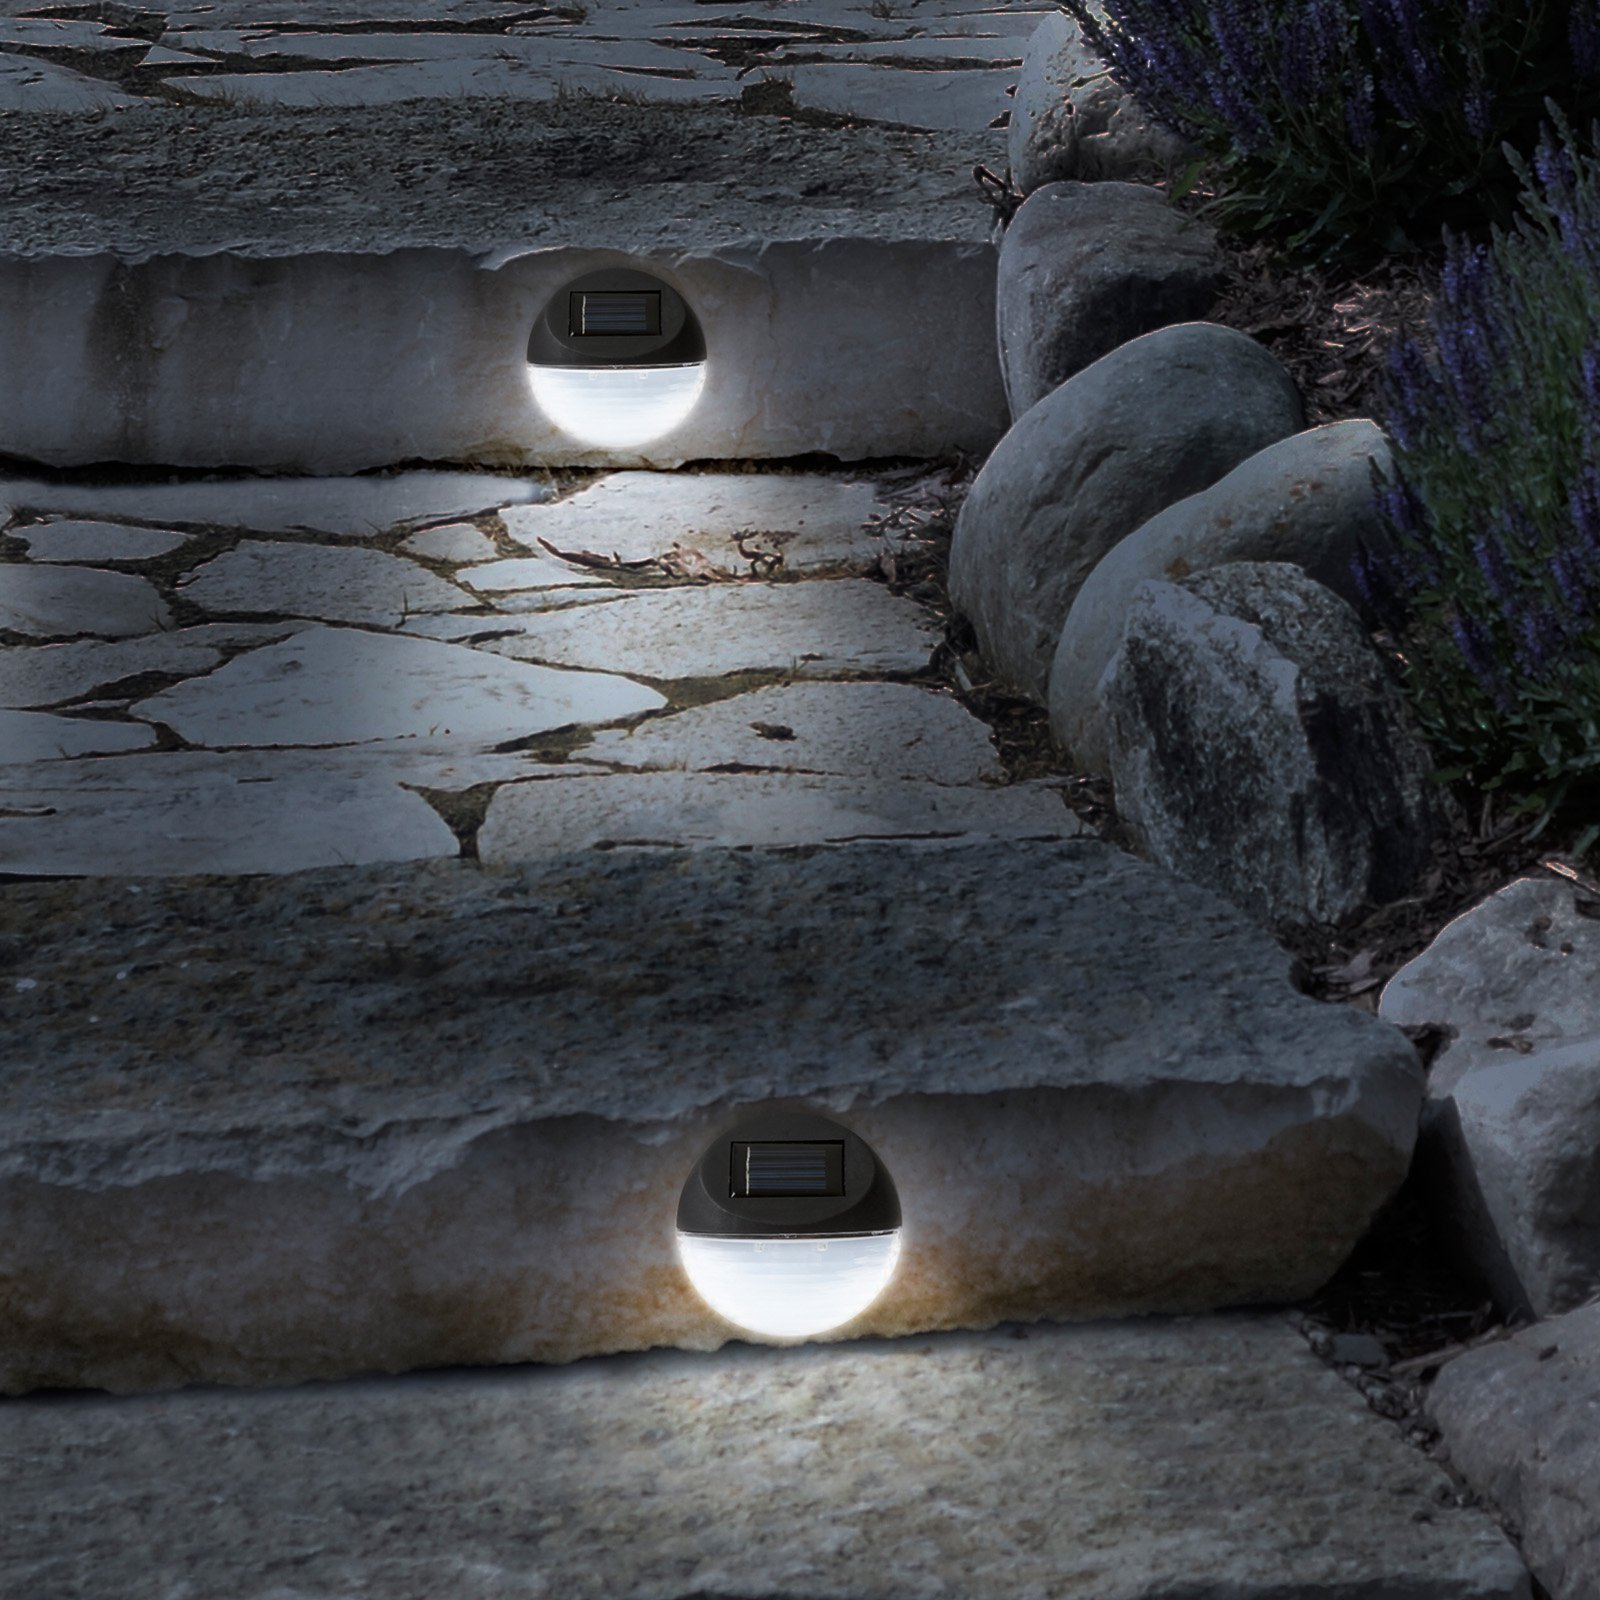 Image of: Solar Lights Outdoor Rechargeable Battery Powered Led Exterior Lighting With Auto On For Home Patio Deck And Driveway By Pure Garden Set Of 4 Walmart Com Walmart Com